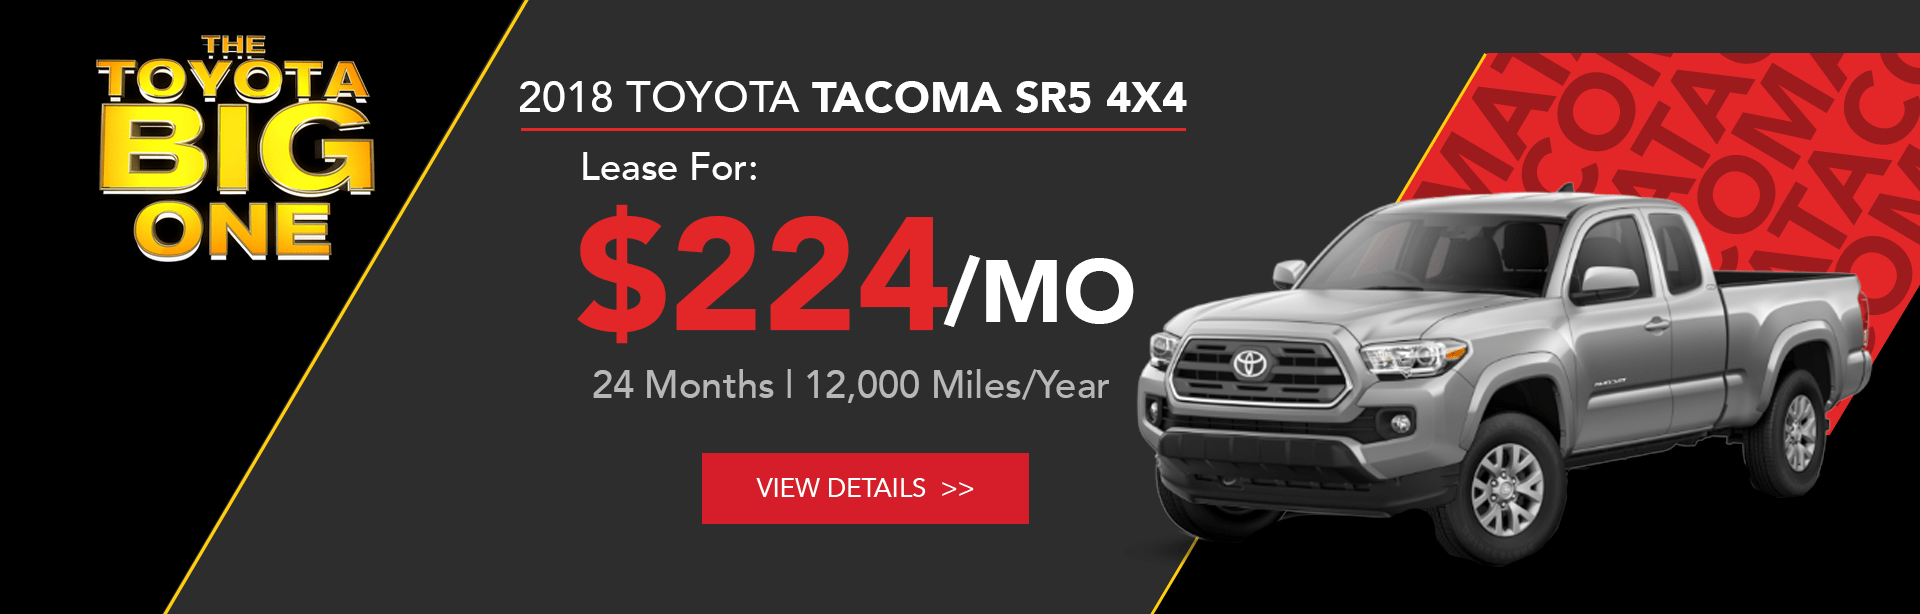 Toyota Tacoma Lease Offer